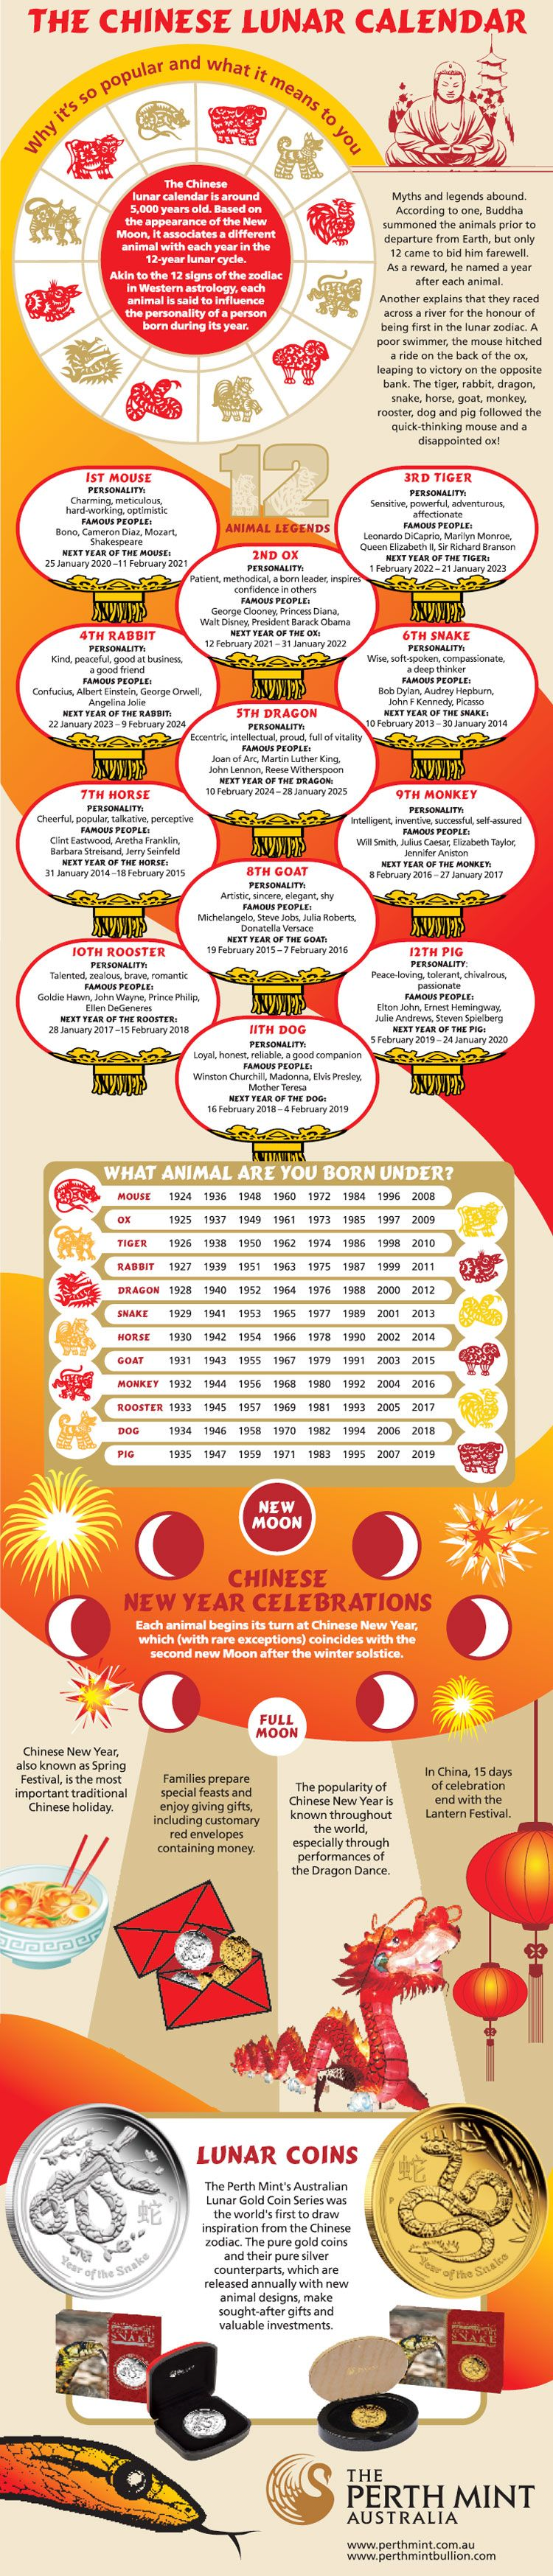 in the spirit of the new year todays infographic takes a look into the celebration - Chinese New Year 1994